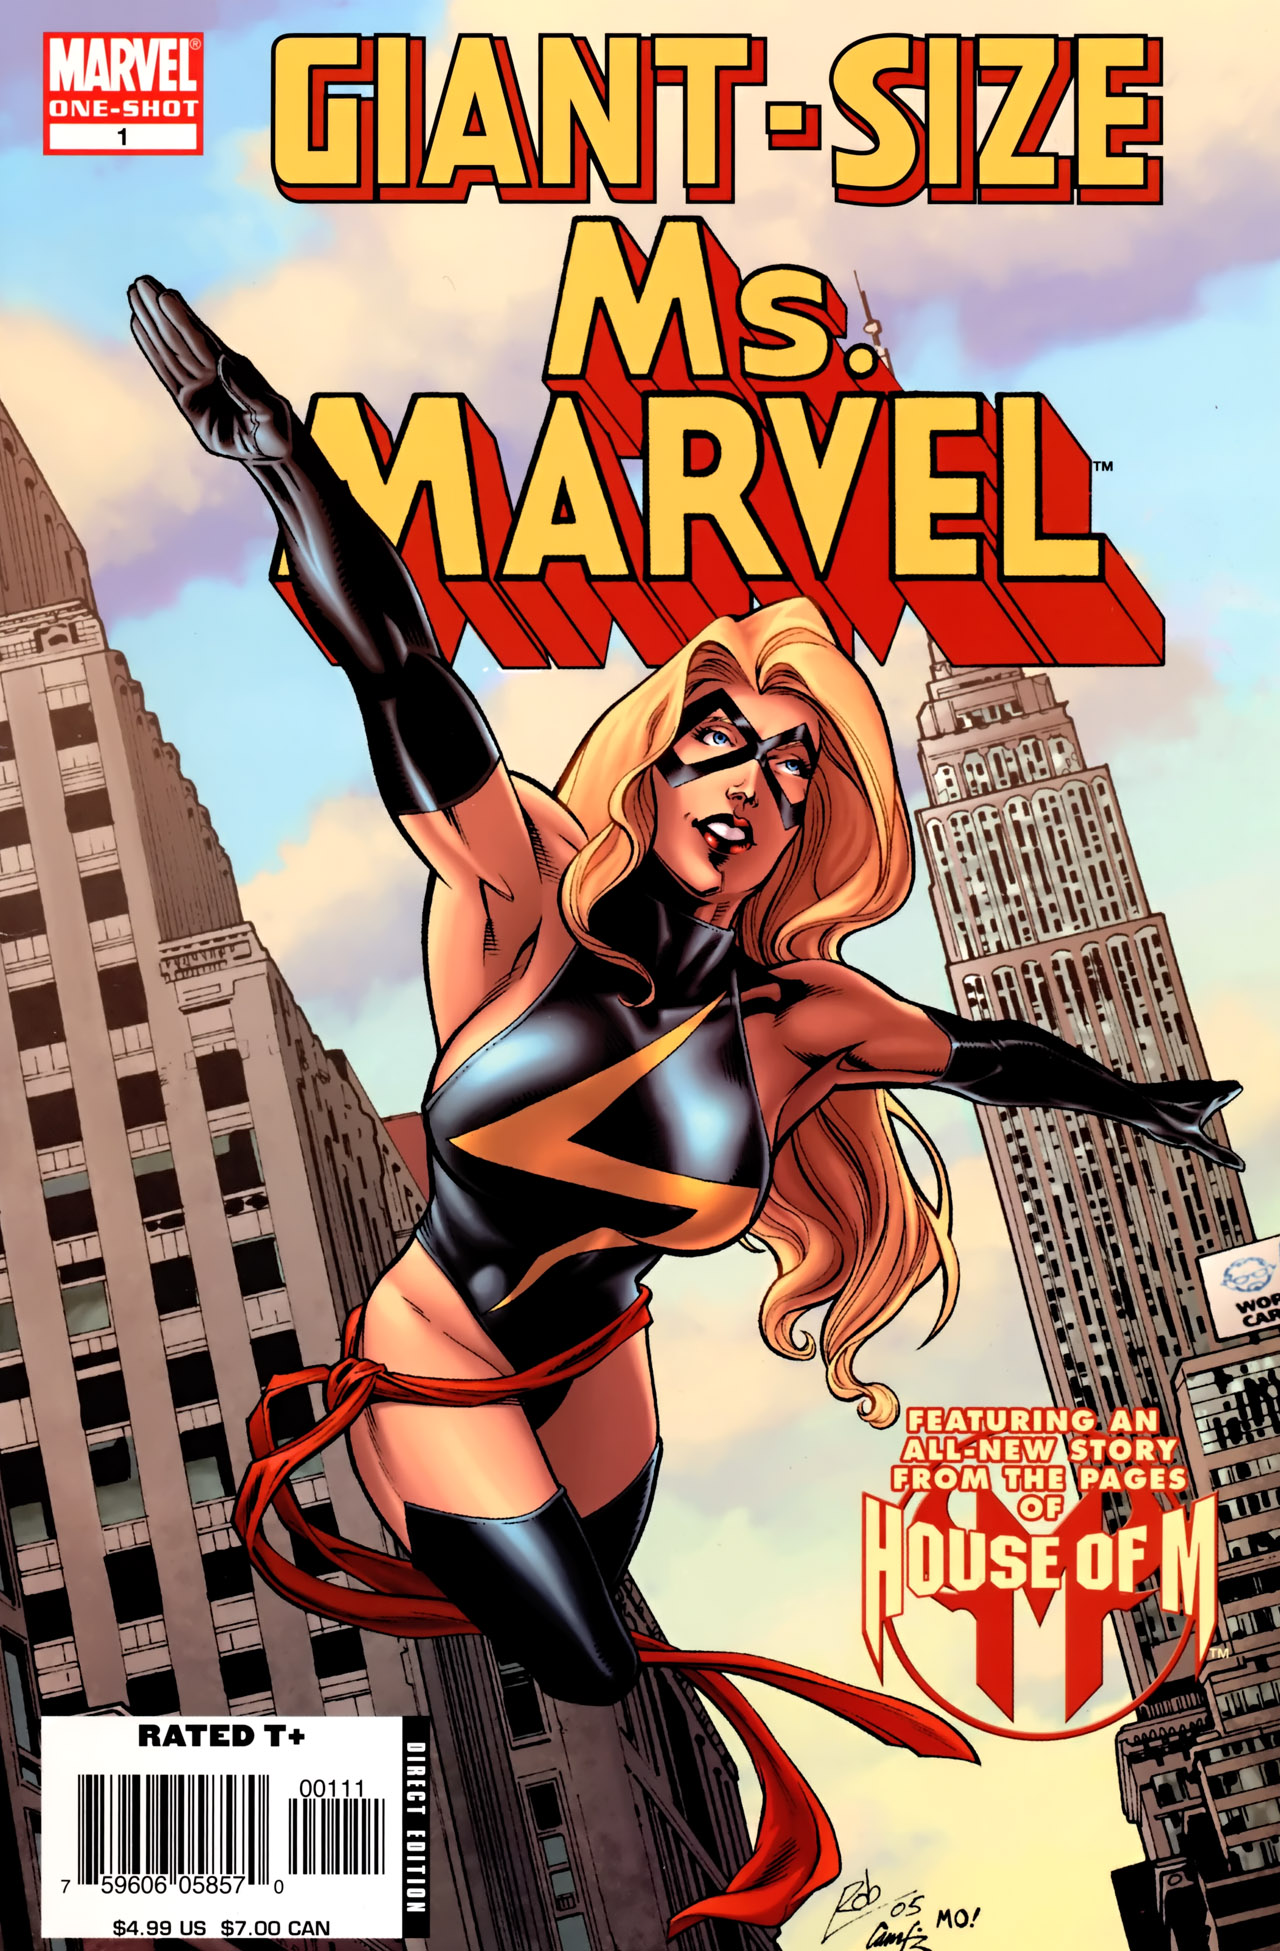 Read online Giant-Size Ms. Marvel comic -  Issue # Full - 1